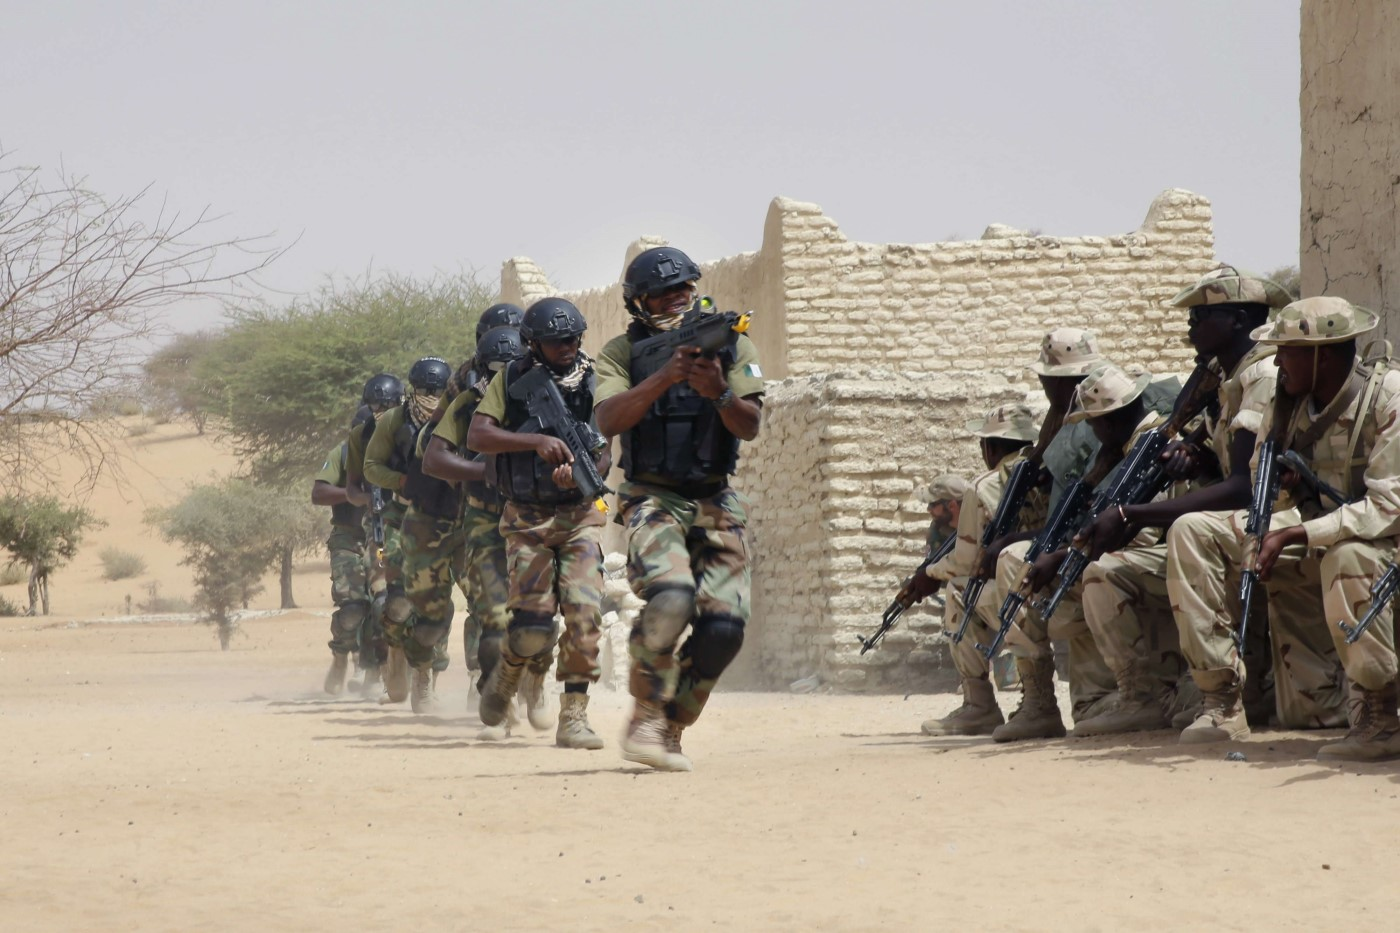 Nigerian special forces and Chadian troops participate with US advisors in the Flintlock exercise in Mao, Chad. (AP)